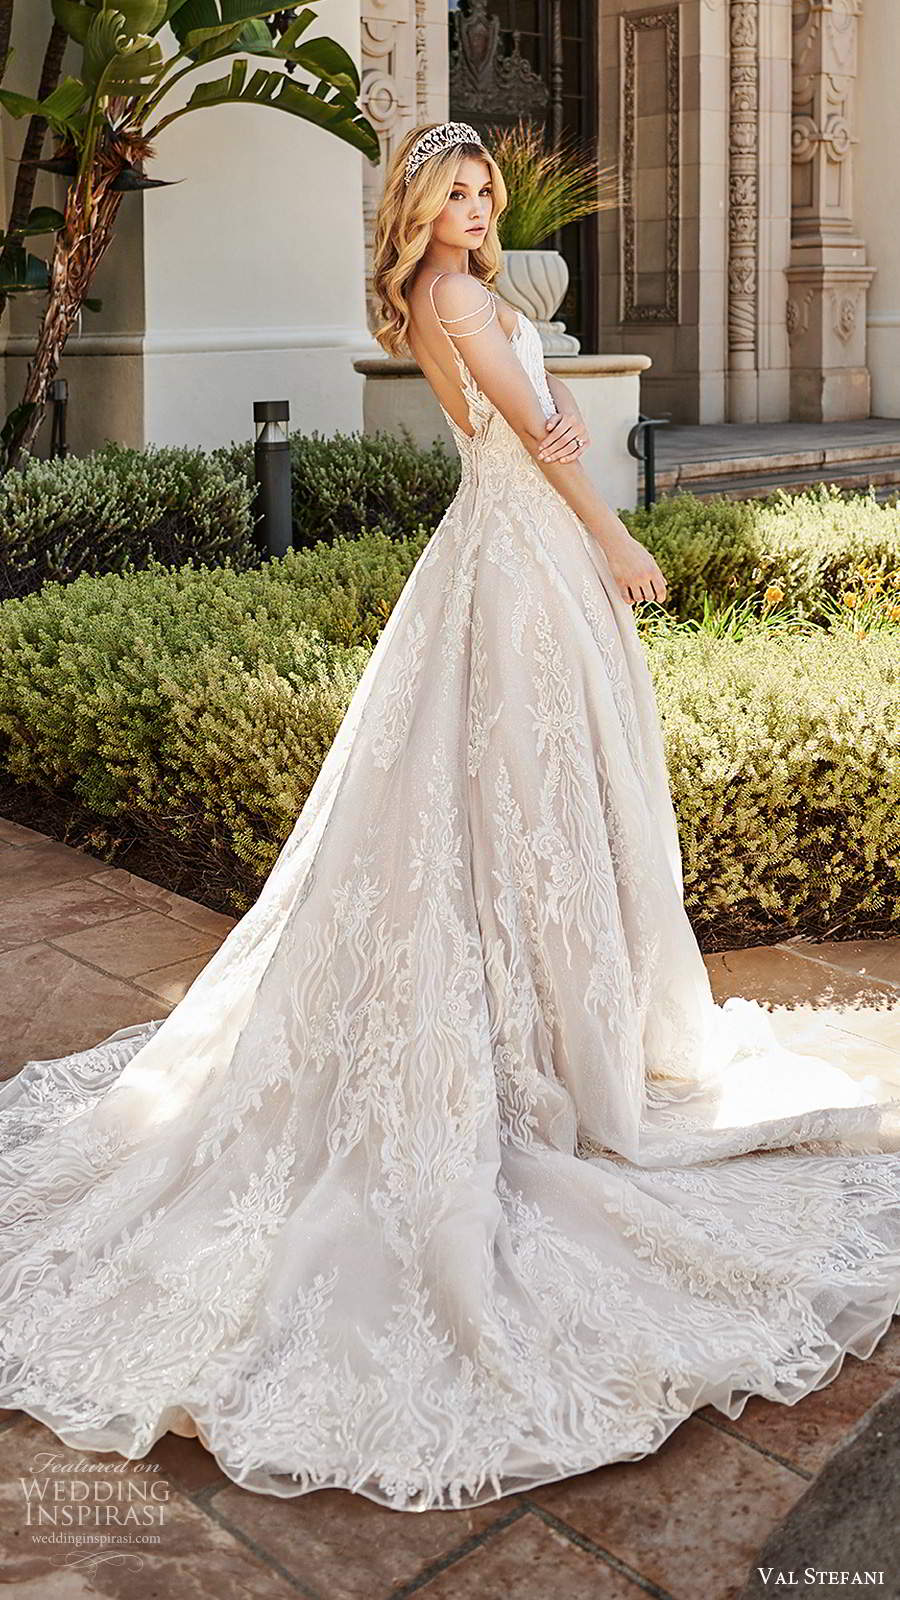 val stefani spring 2020 bridal cold shoulder sleeveless thin straps v neckline fully embellished a line ball gown wedding dress scoop back chapel train (5) bv